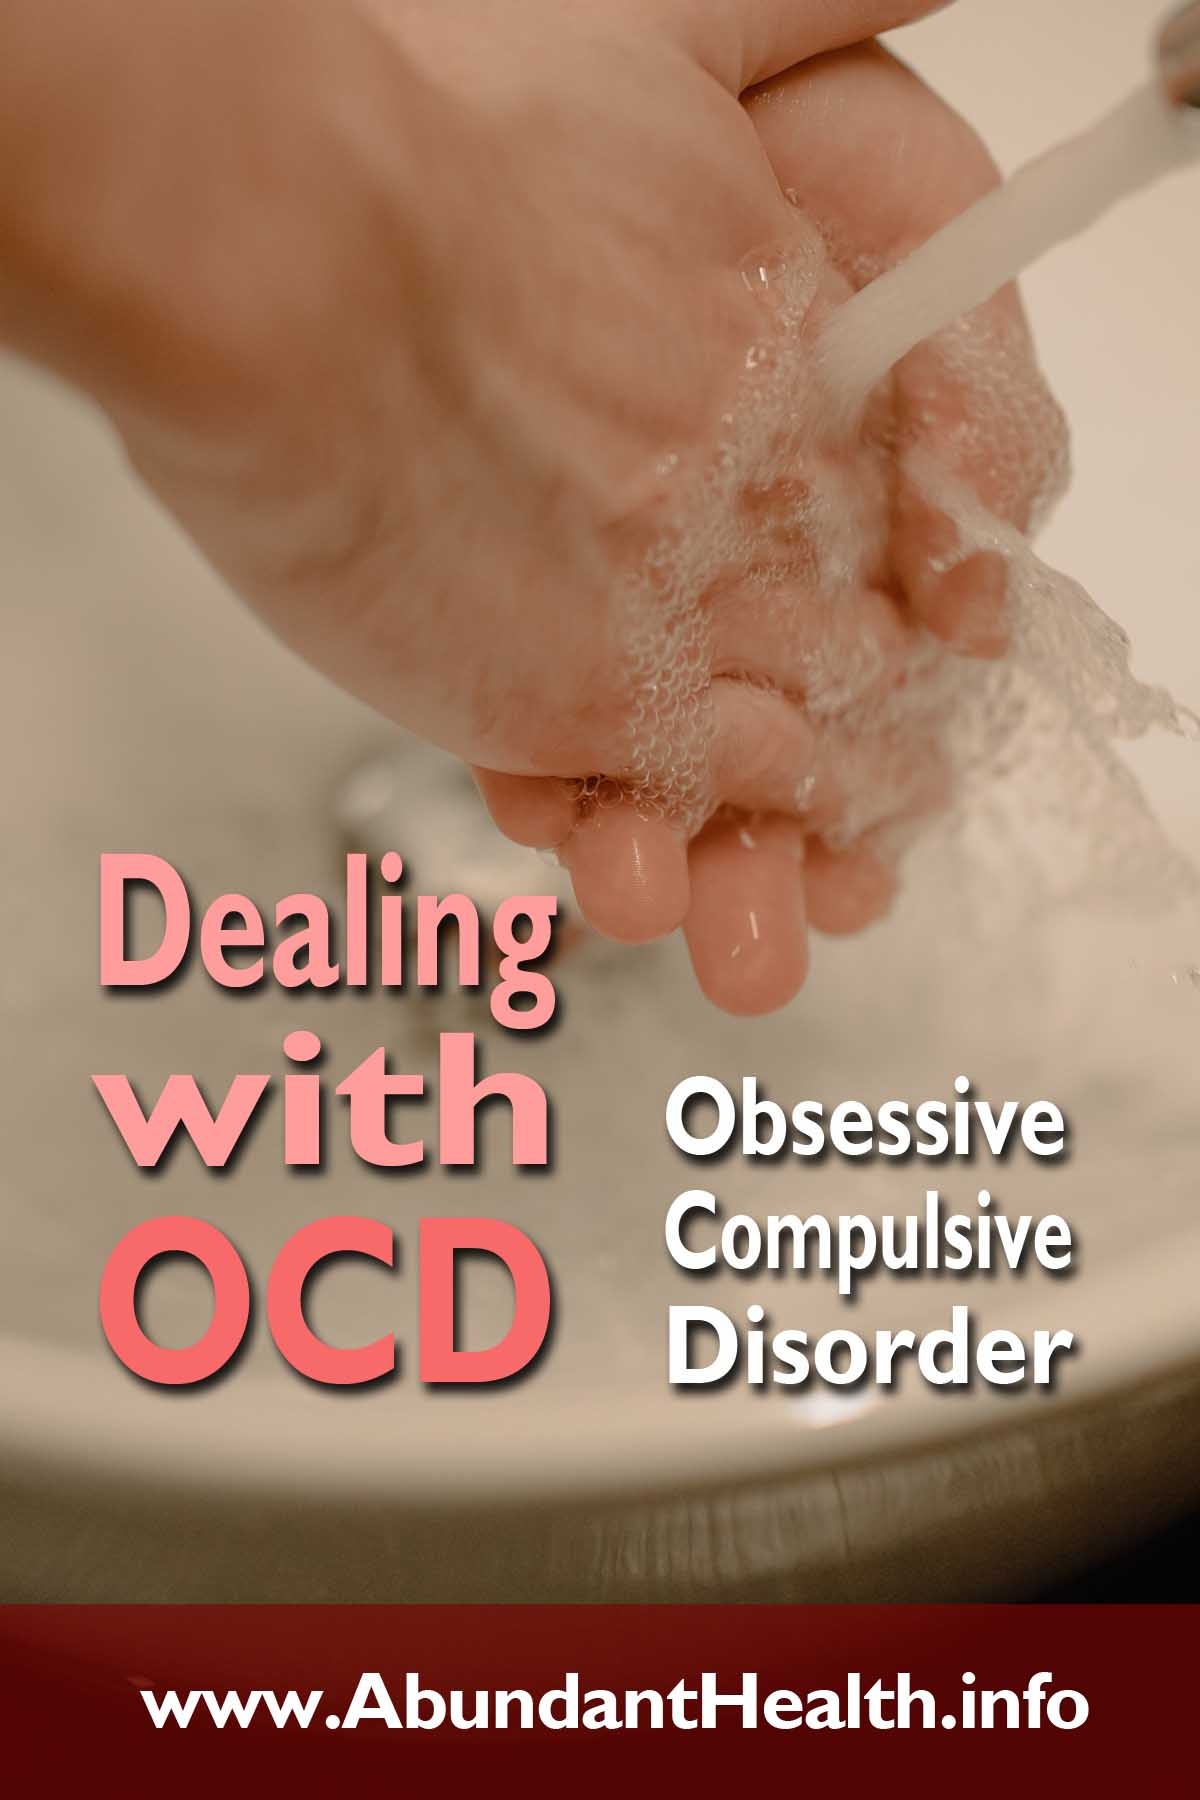 Dealing with OCD - Obsessive-Compulsive Disorder